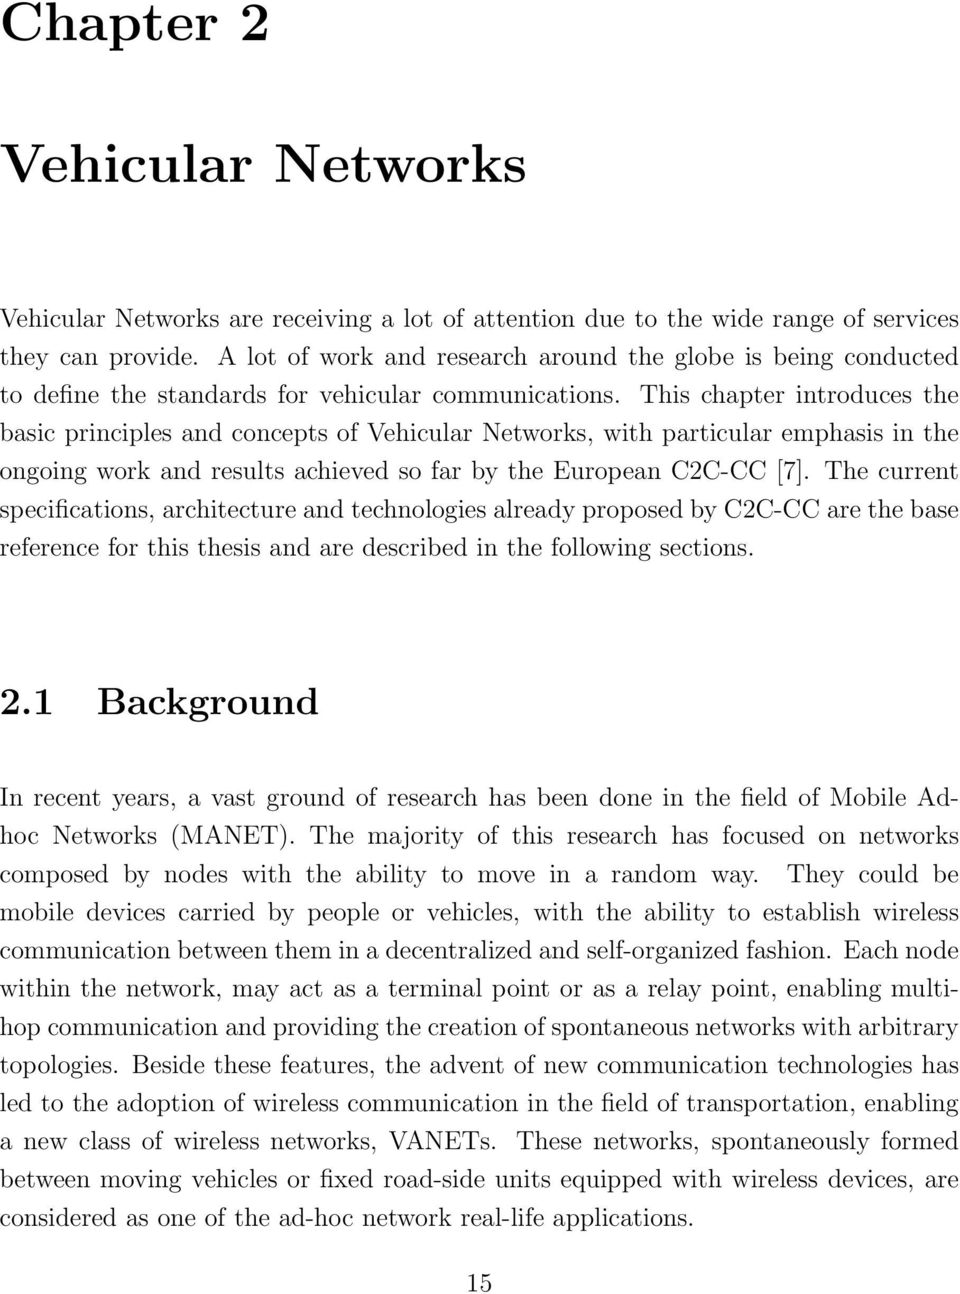 phd thesis on ad hoc networks Xue, lei (2005) internet connection method for mobile ad hoc wireless networks phd thesis, university of warwick.